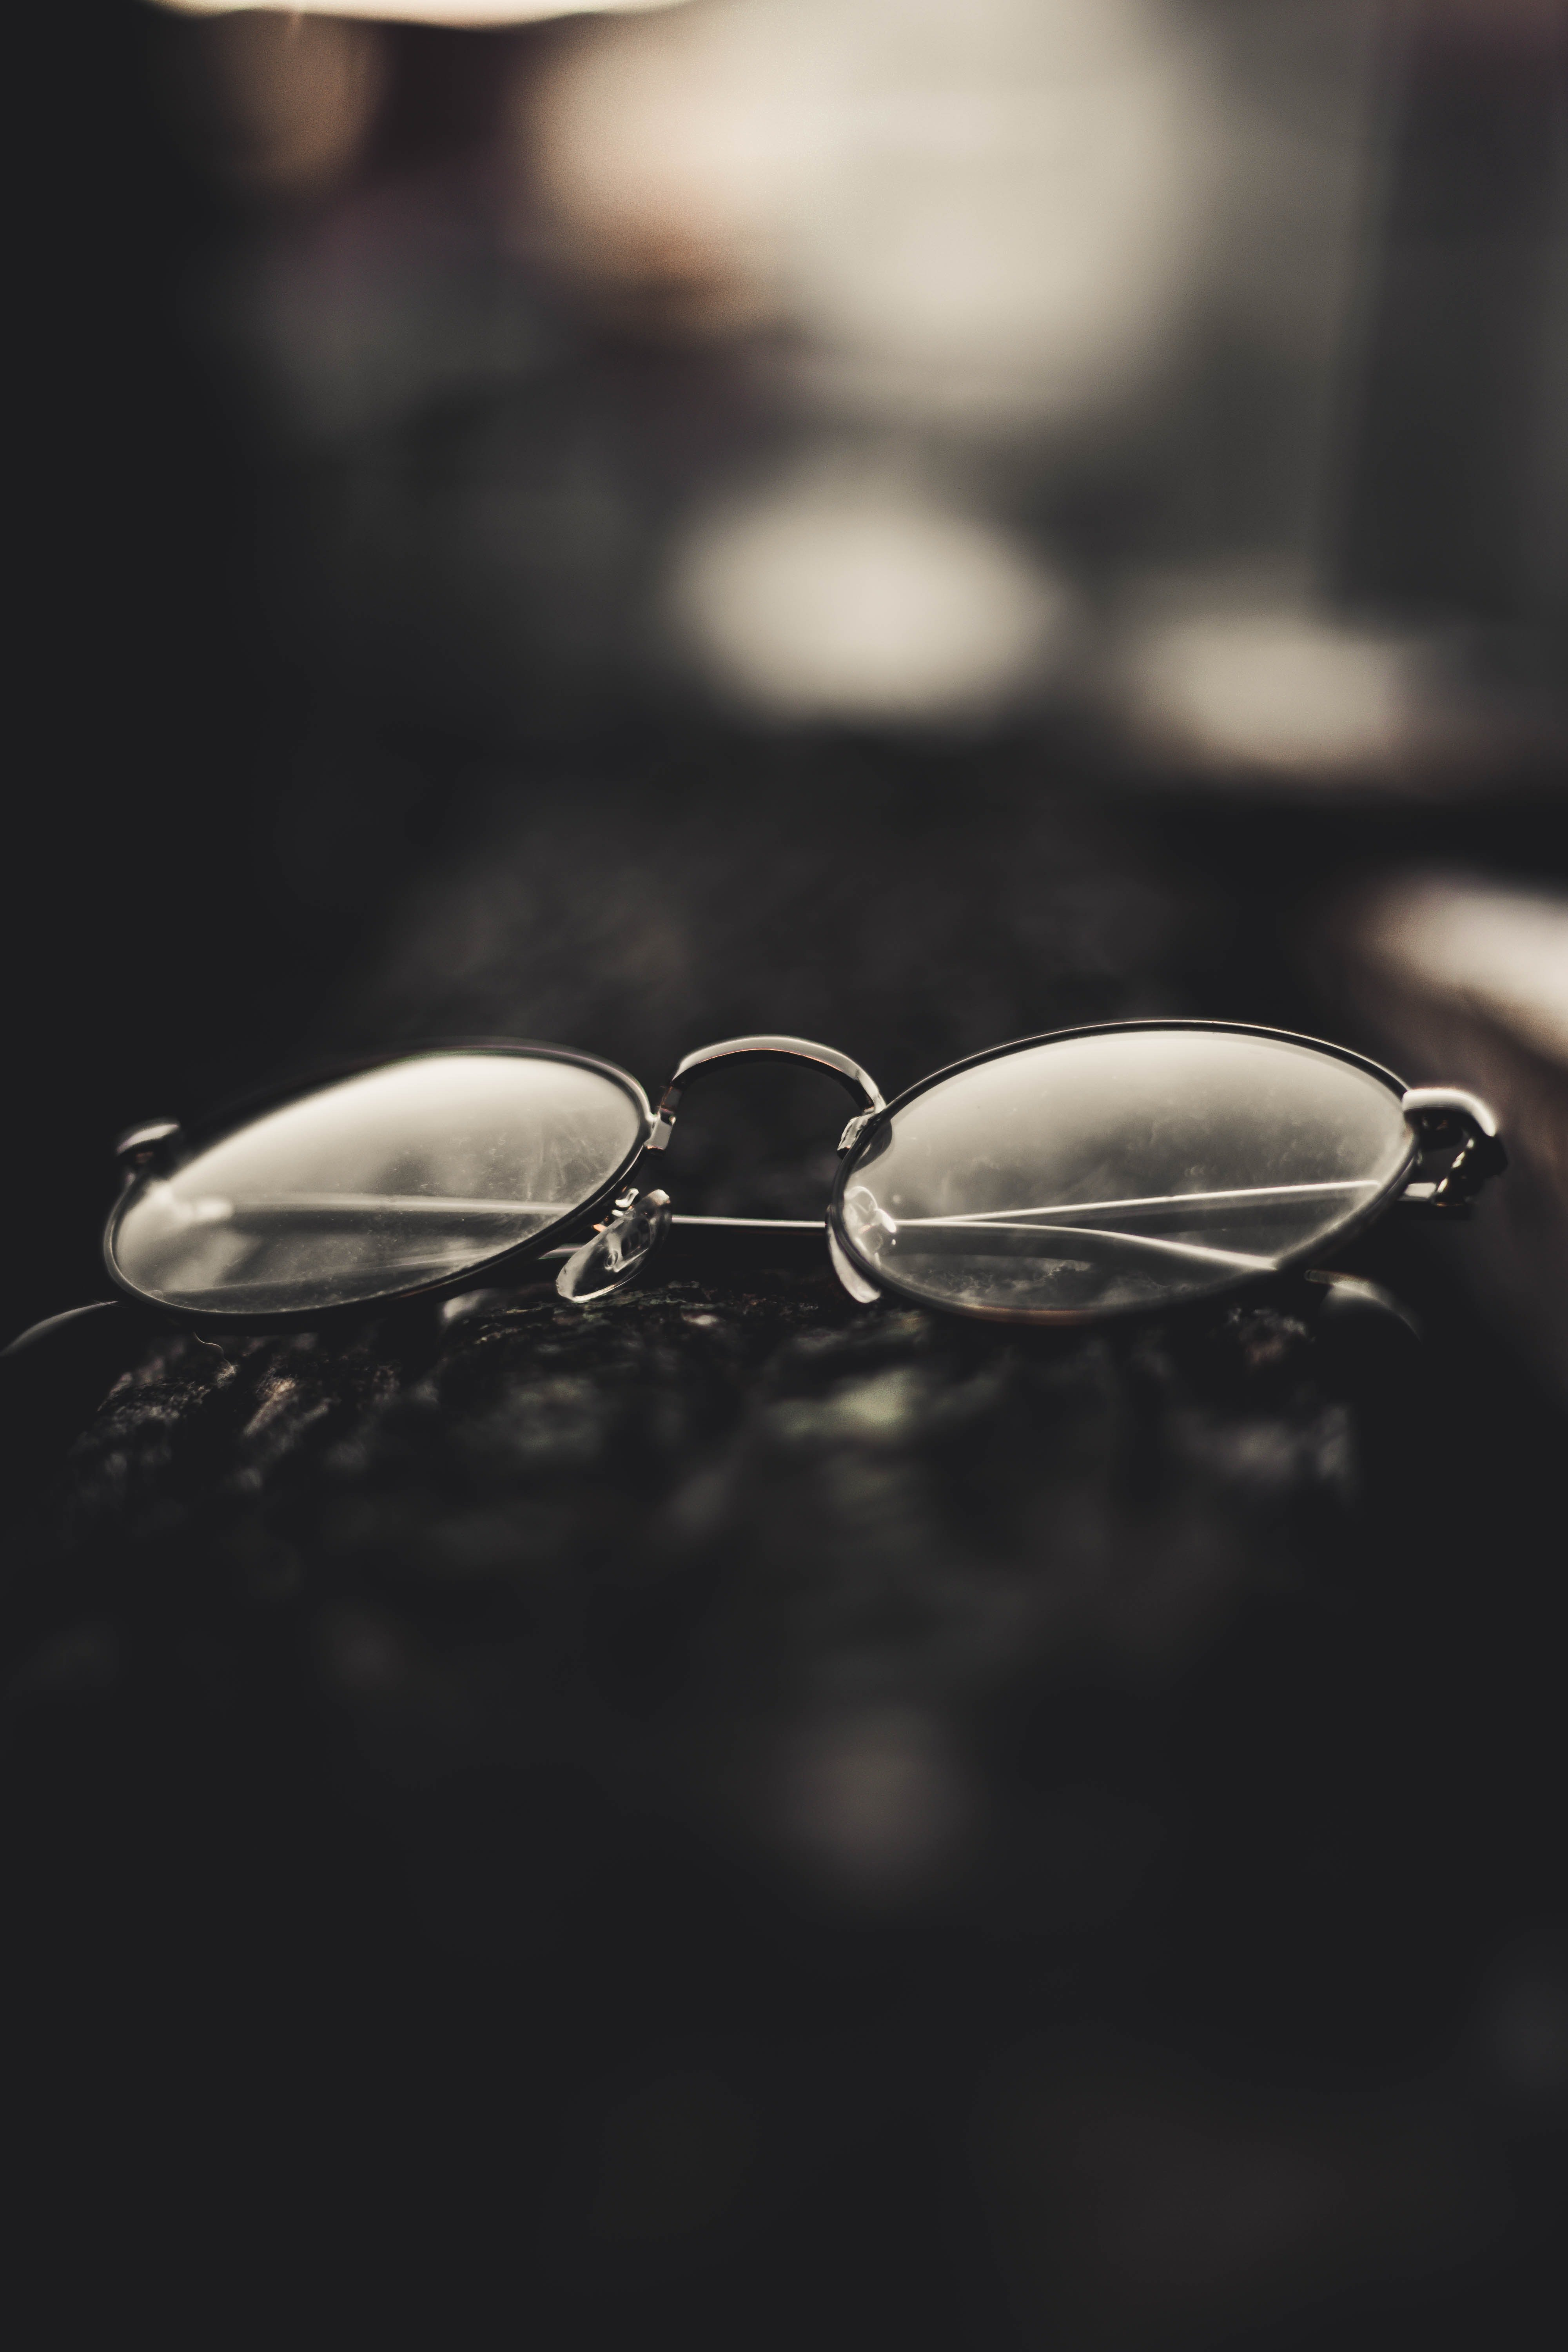 David didn't believe the waiter when he told him he couldn't see without glasses   Photo: Pexels